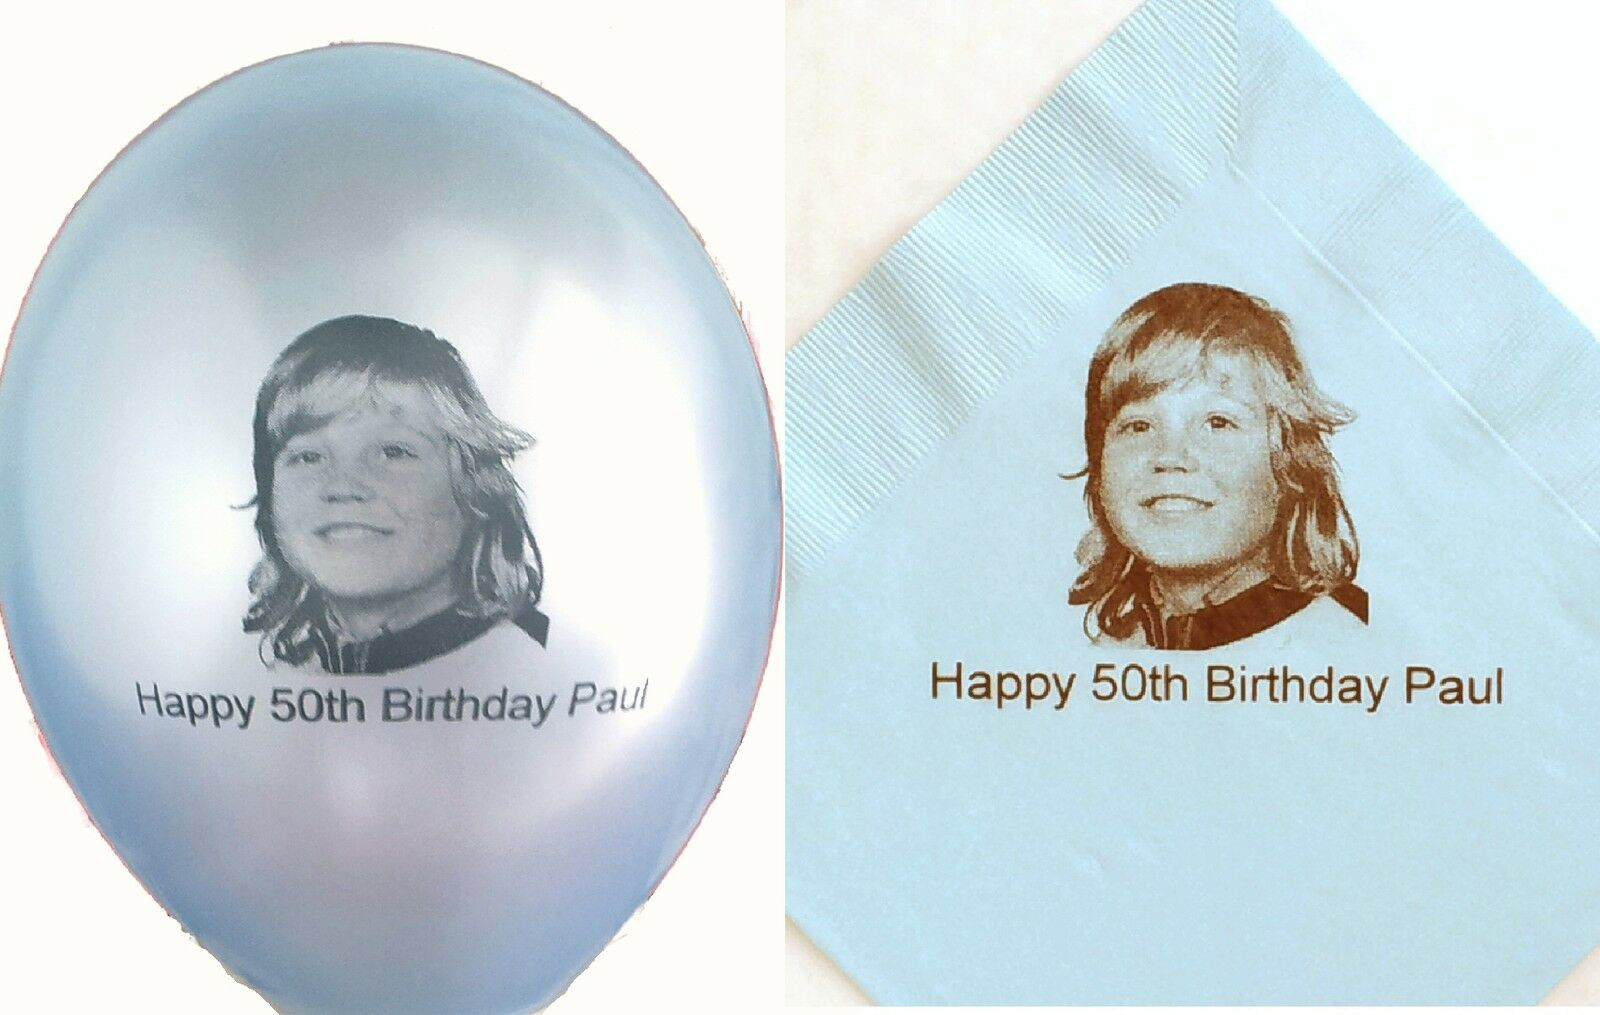 20 20 20 personalised photo balloons with  100  paper napkins 7e7e94